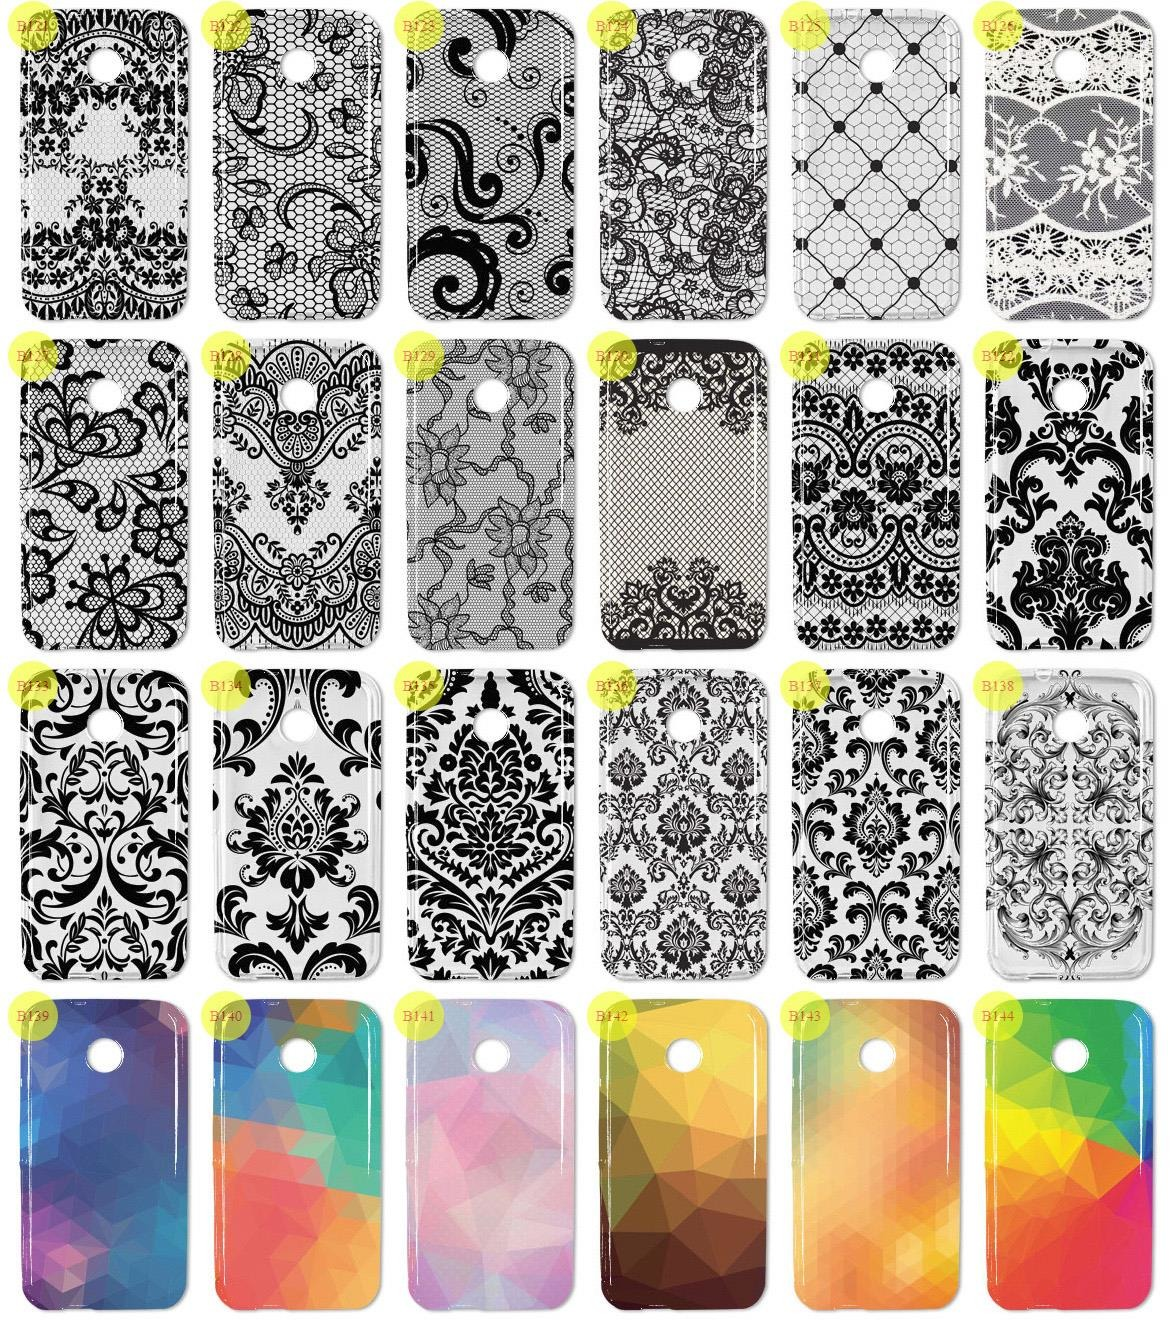 Back Case Print Cover 03mm Kreatui Artcase Vodafone Smart Mini 7 Flip Blackberry Aurora Click To Zoom